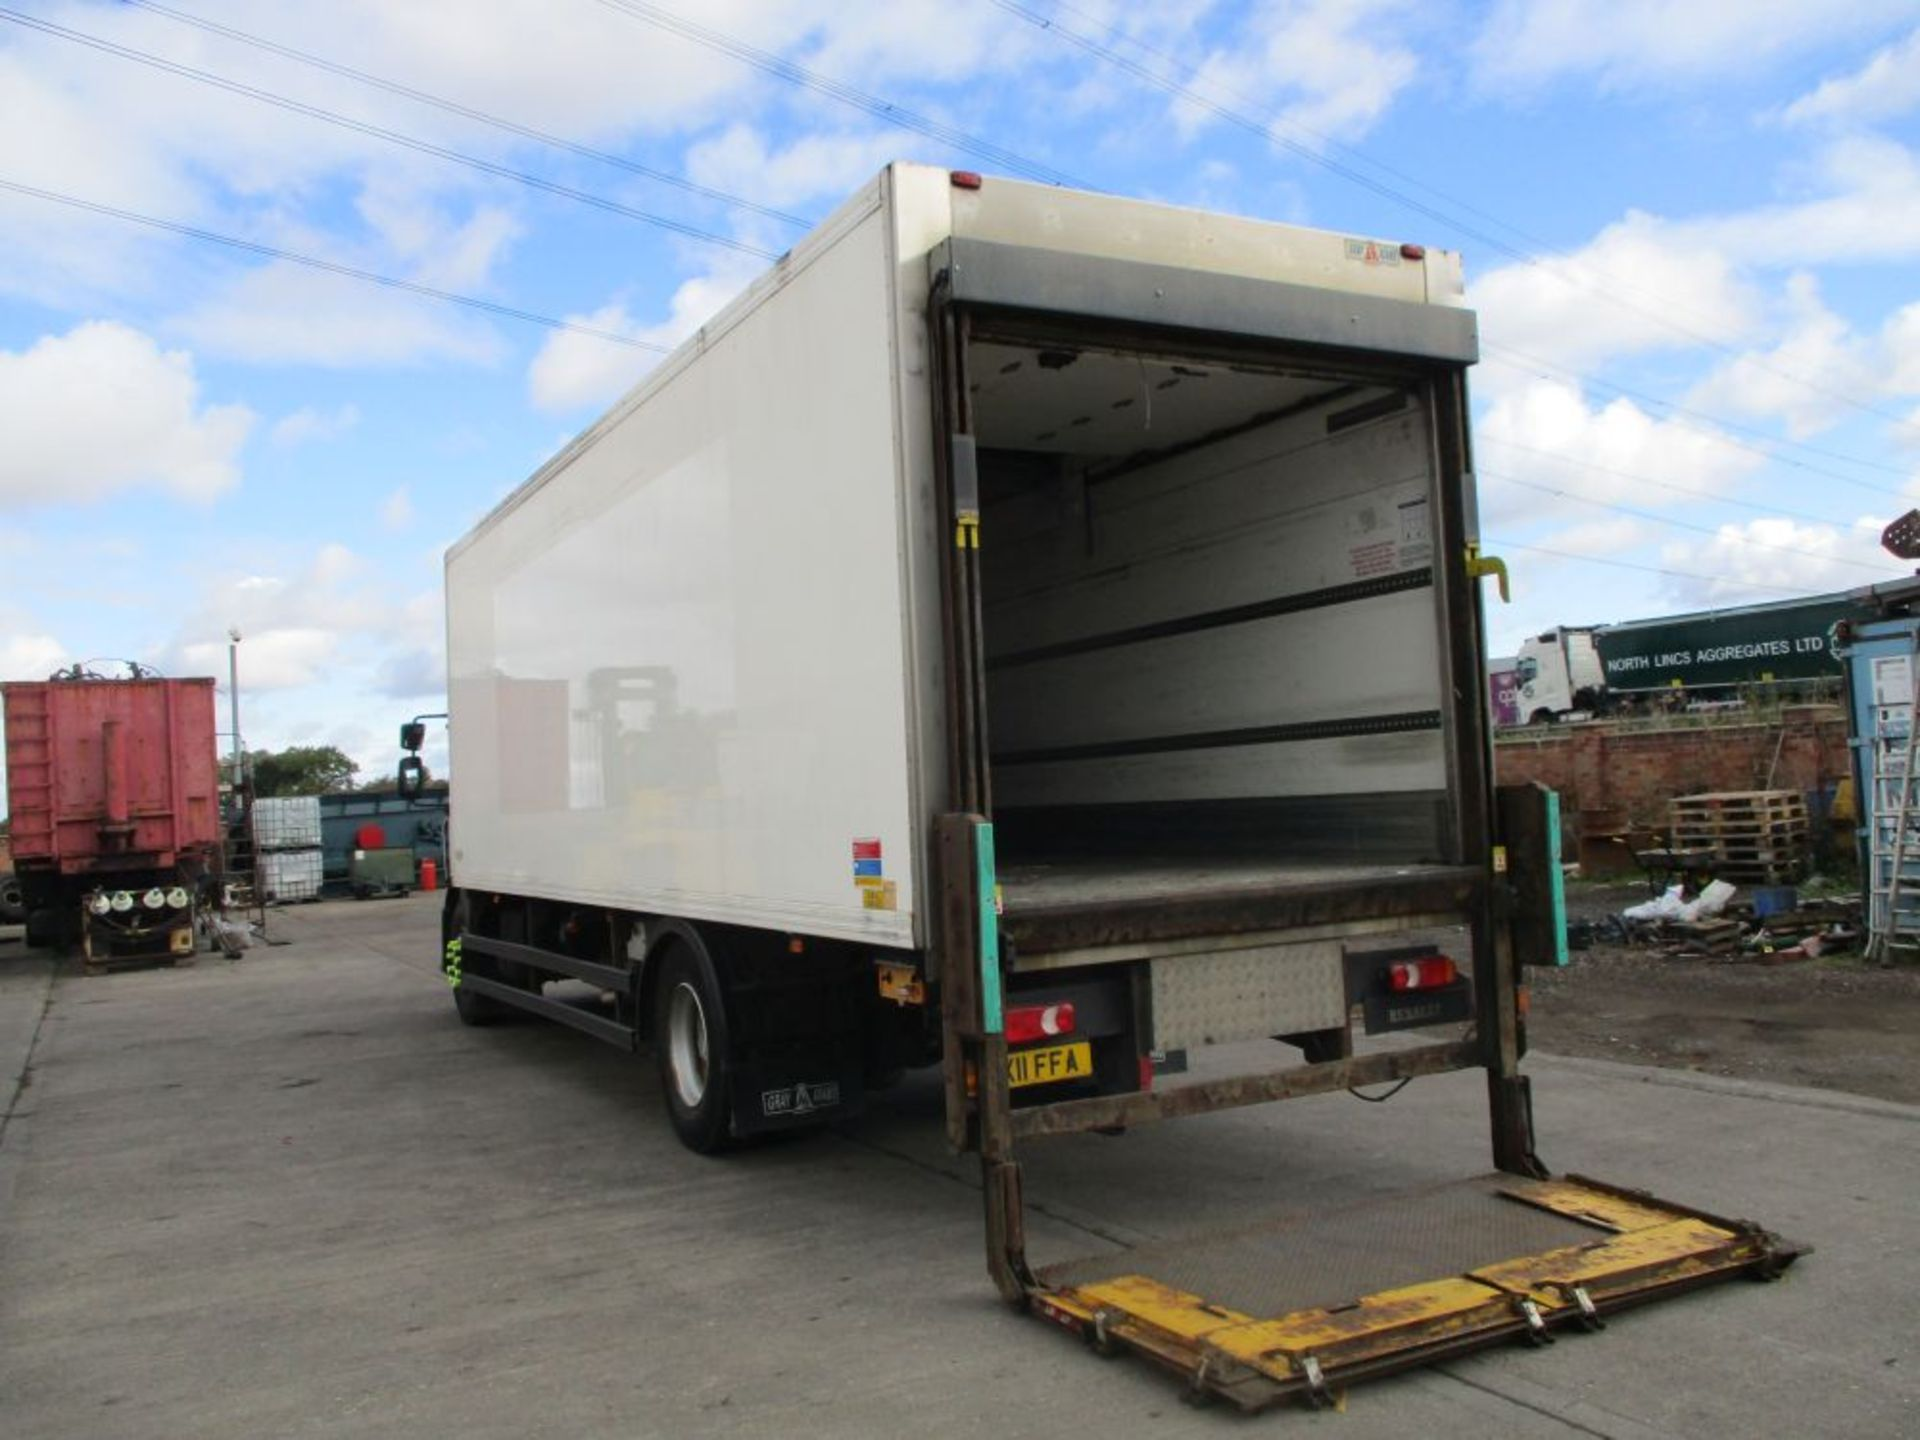 Lot 12 - Renault Midlum 270 DXI 27FT Gray & Adams Fridge Box